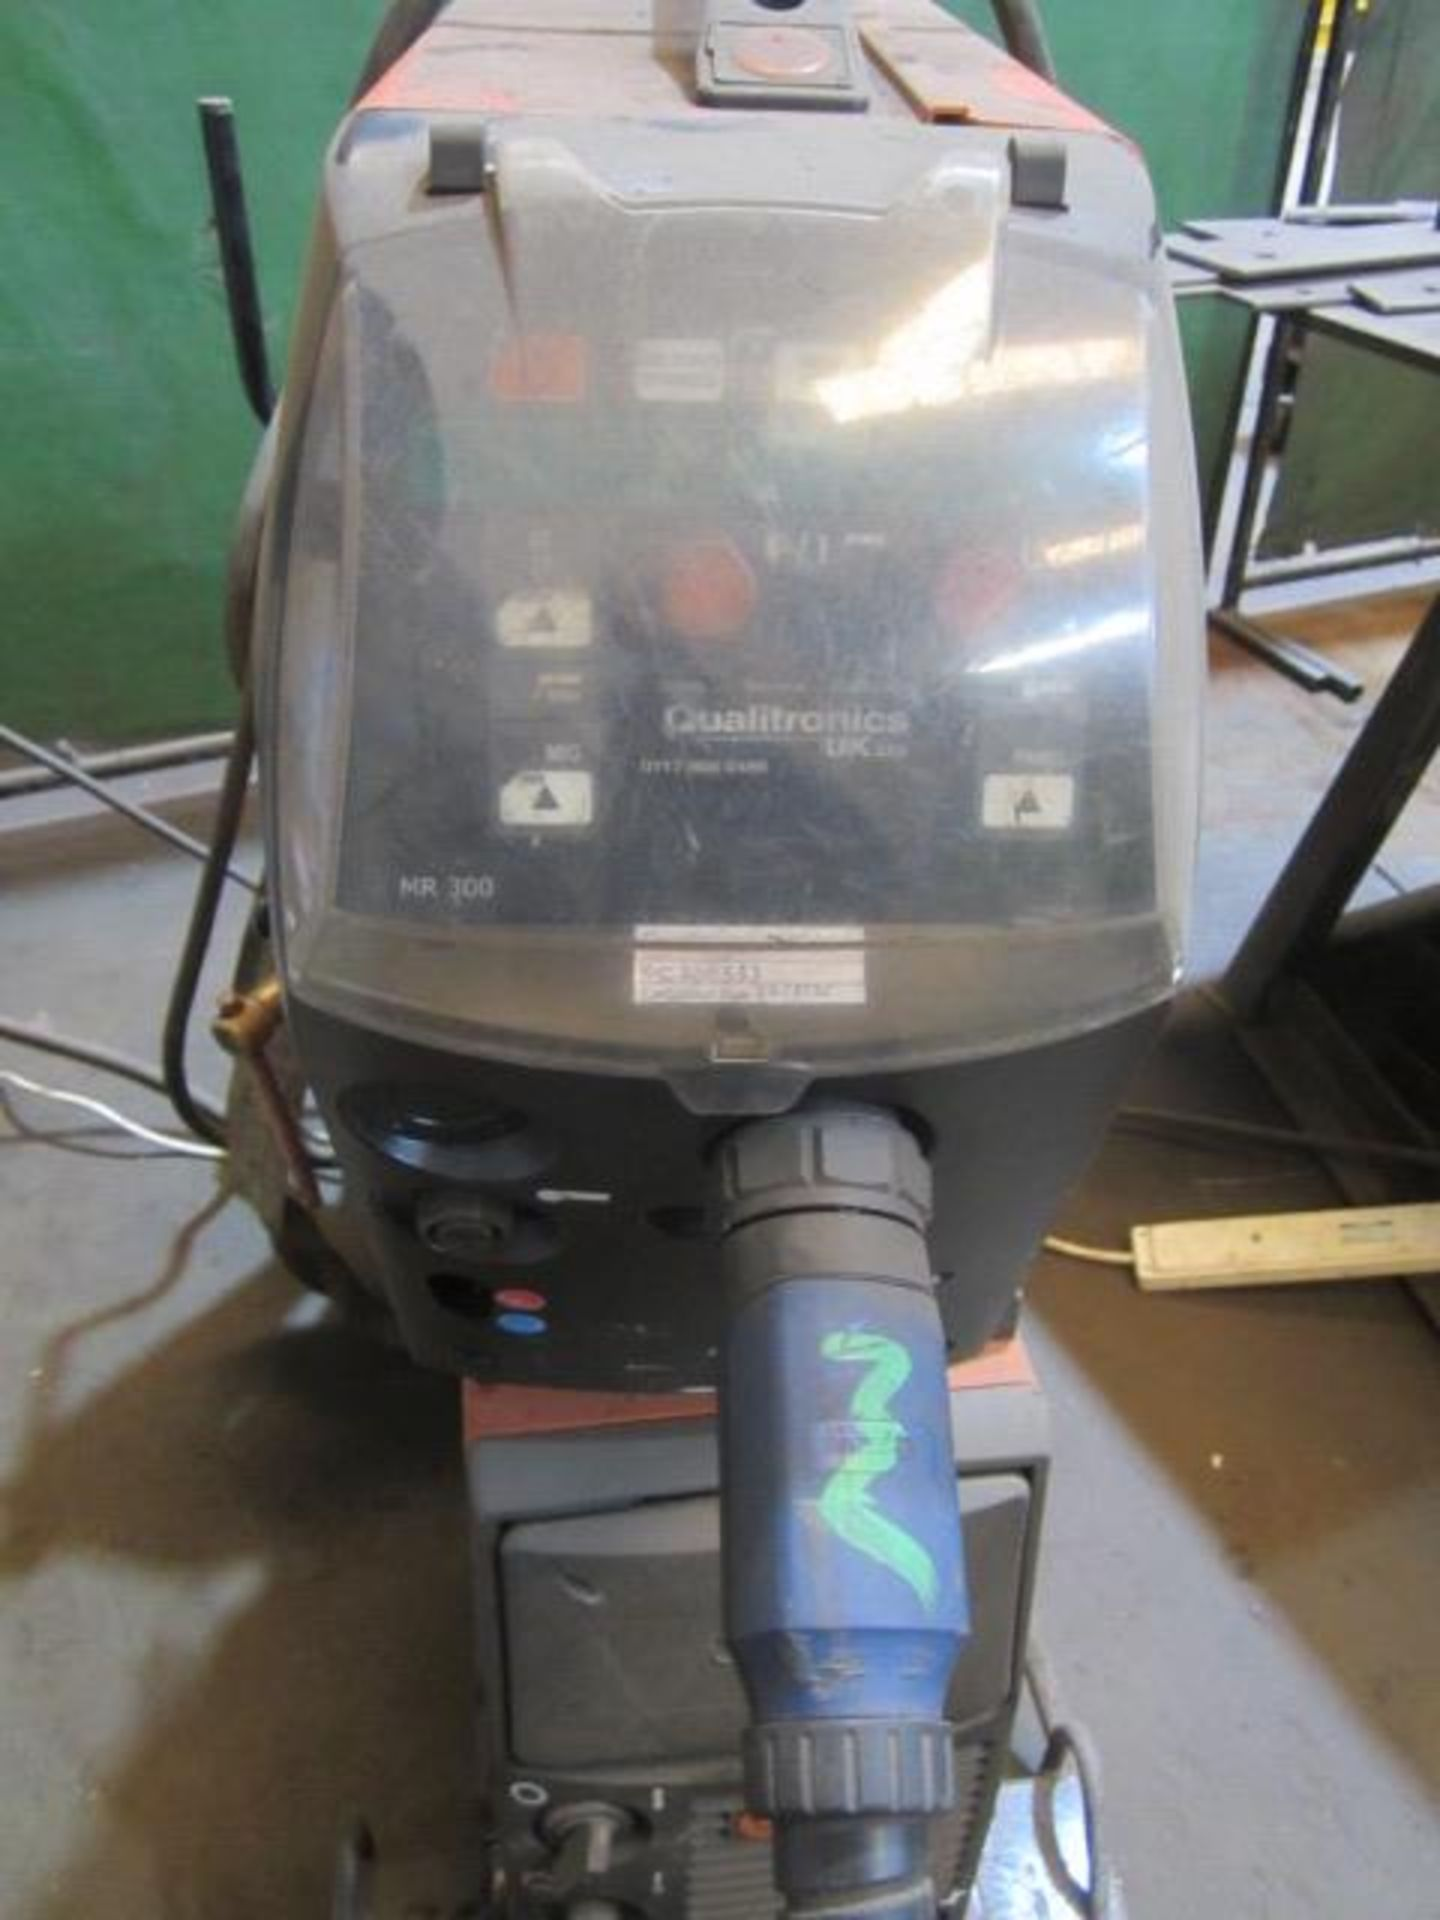 Kemppi Fast Mig M420 mig welder, serial no. 2674278, with Fast Mig MXF65 wire feeder, serial no. - Image 3 of 7